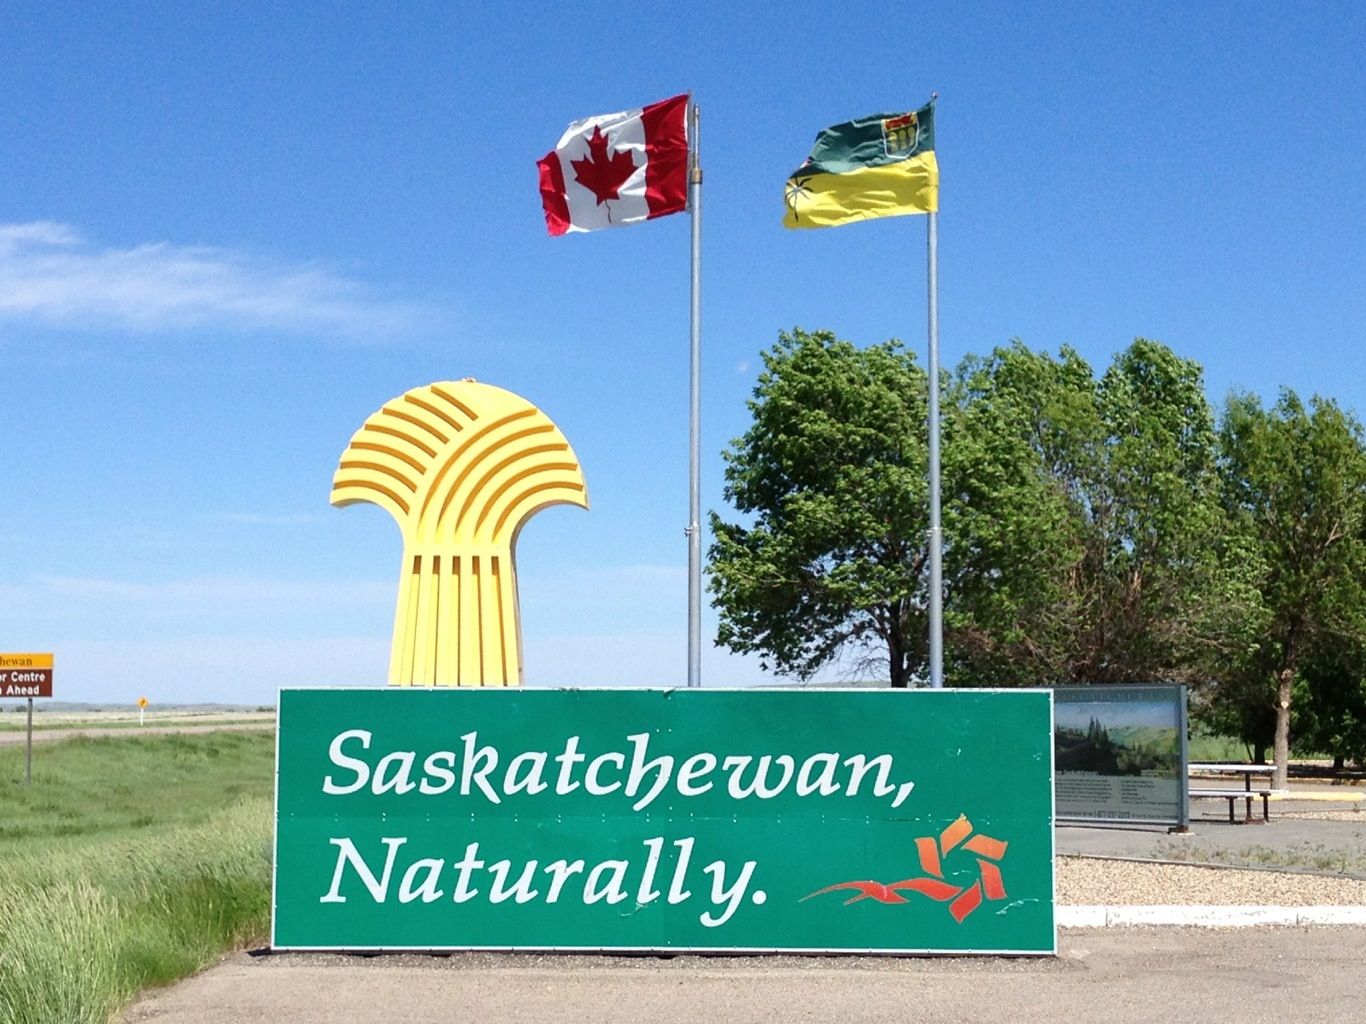 Saskatchewan Issues Out the Greatest Immigration Offer: 926 Expression of Interest Program